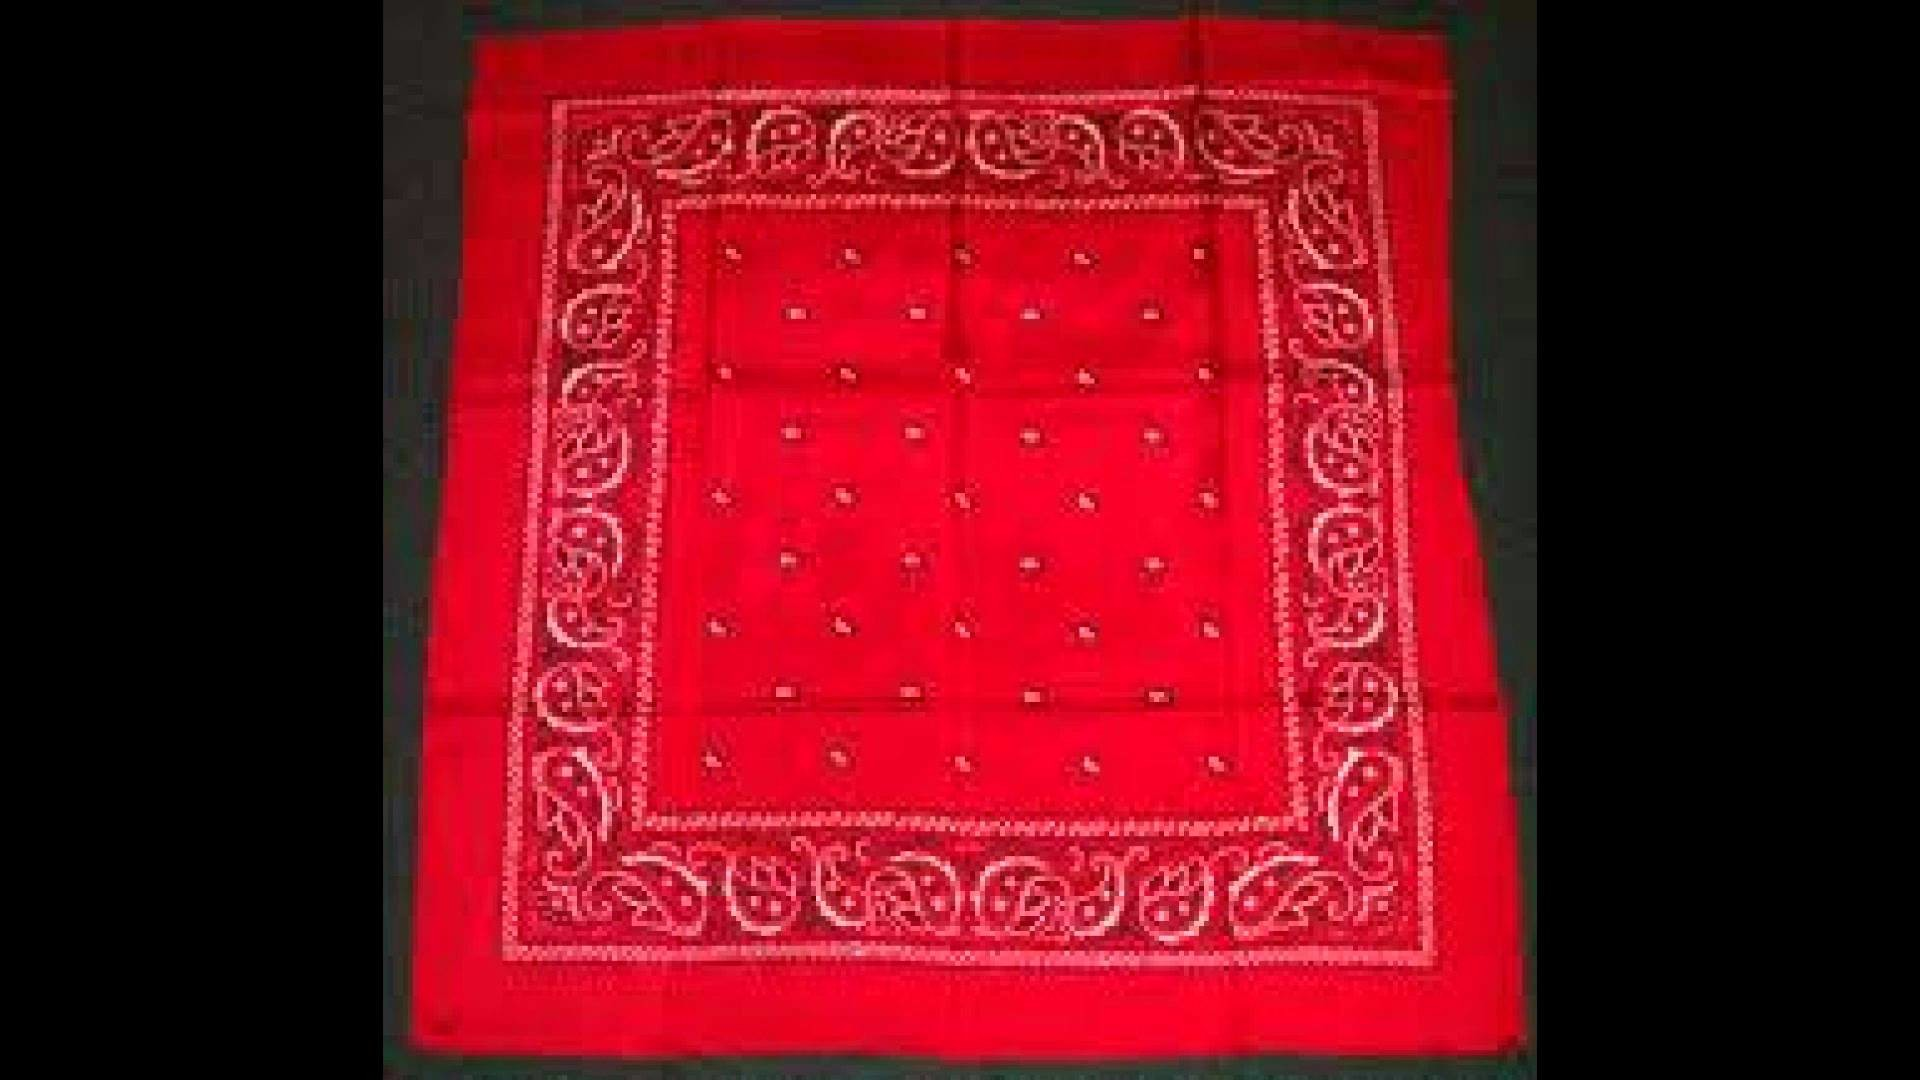 Cute Red Hearts Wallpapers Red Bandana Wallpaper 48 Images